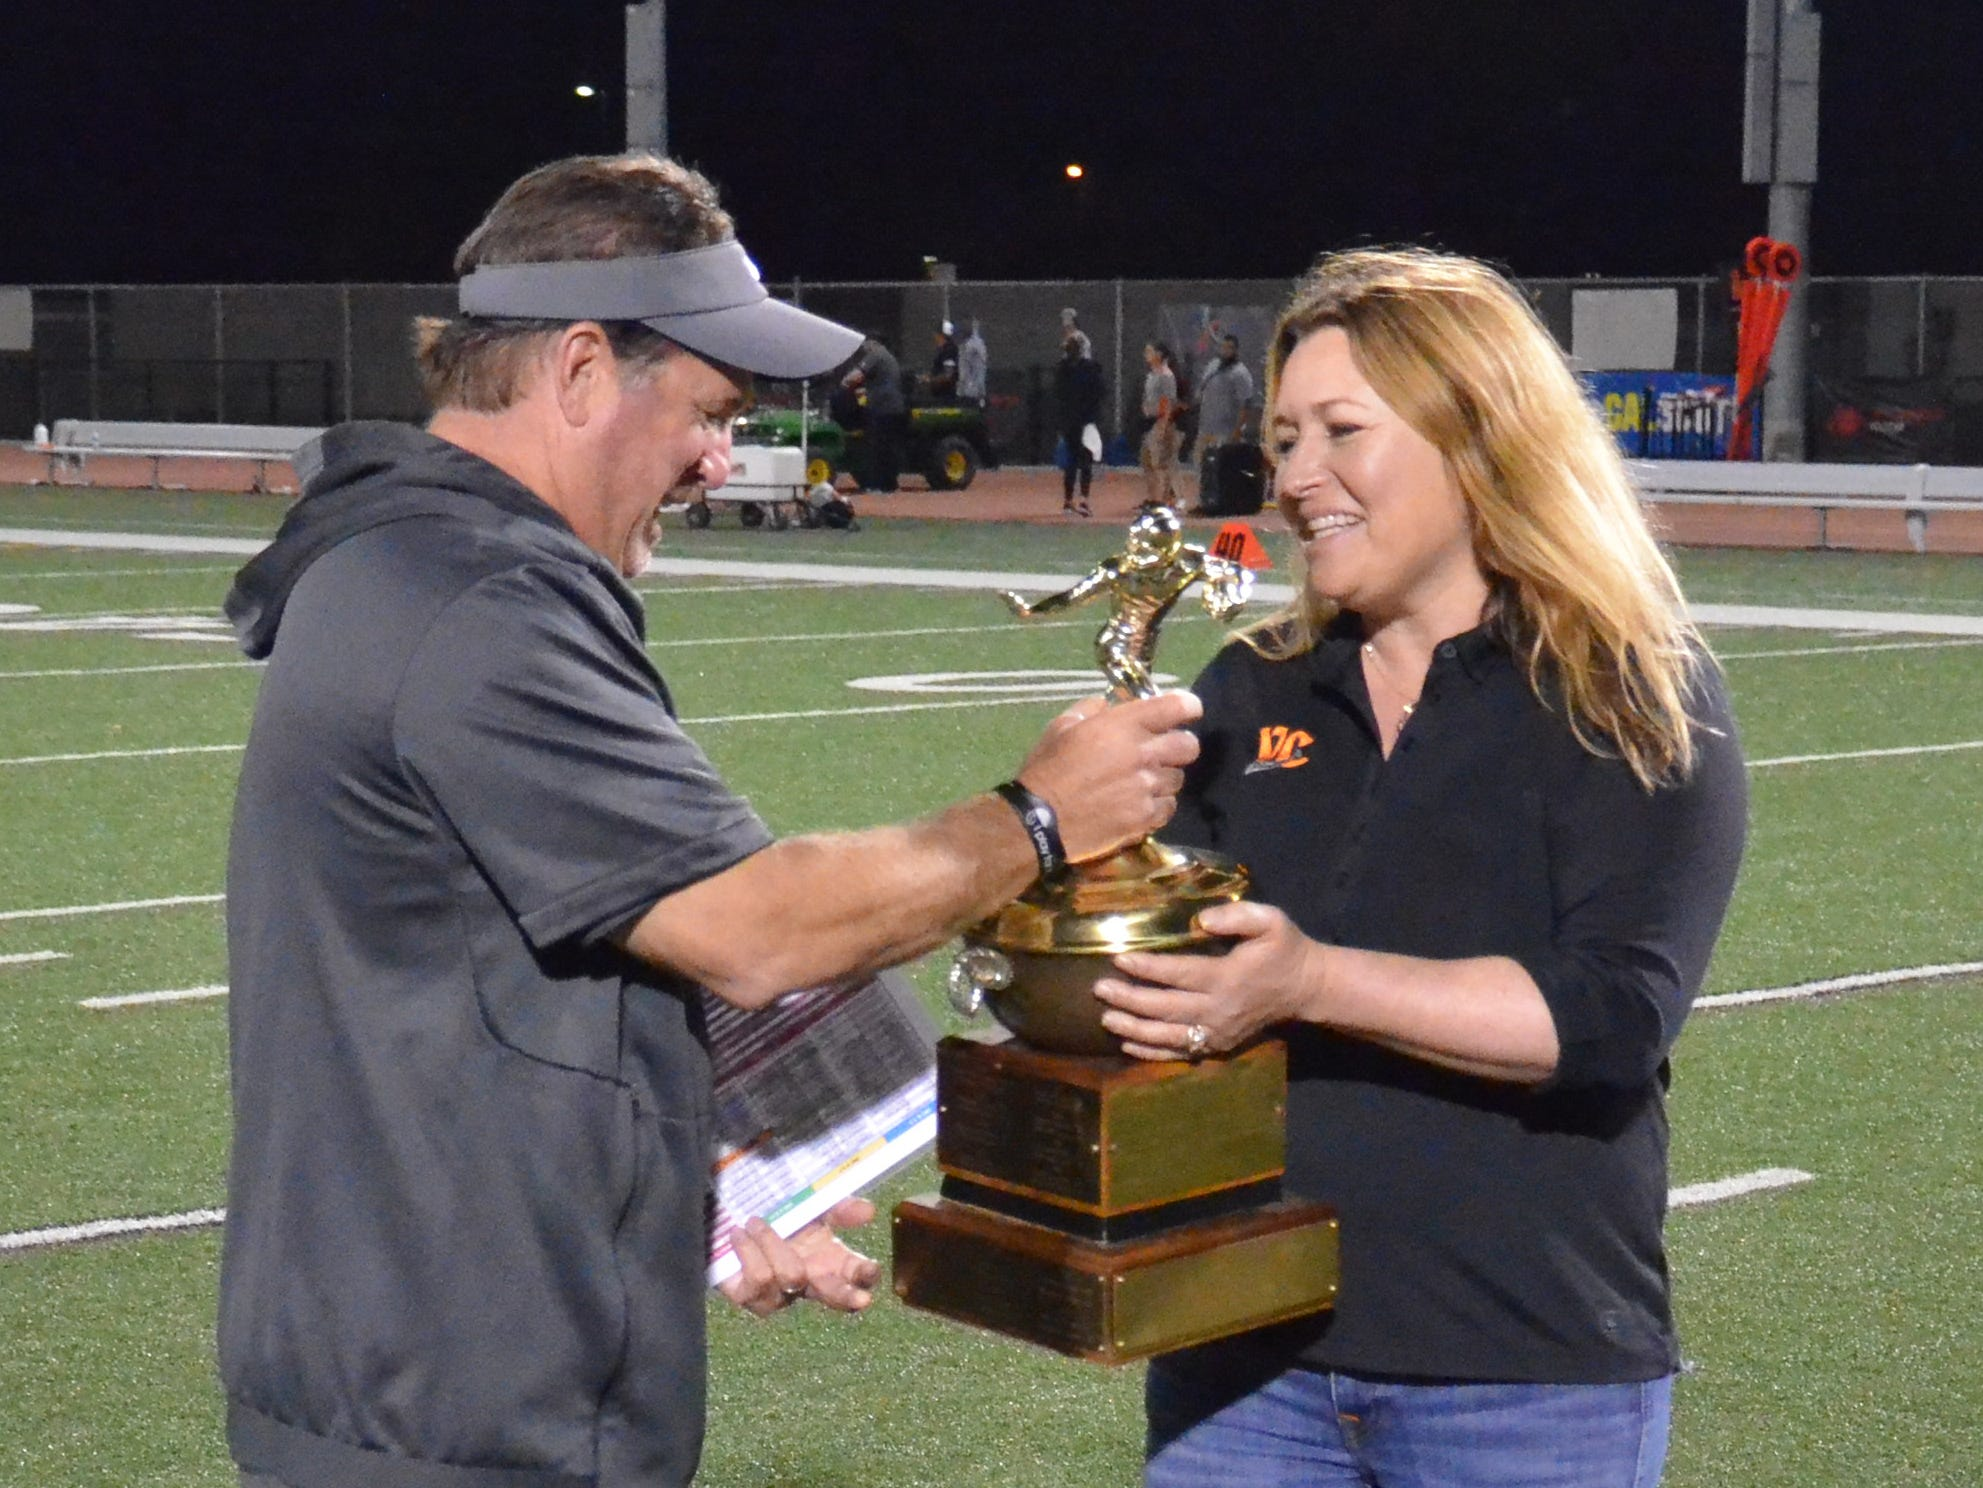 Ventura College interim athletic director Mary Giles (right) hands the Citrus Cup to VC head coach Steve Mooshagian after the Pirates' 62-7 win over rival Moorpark College on Saturday night at the VC Sportsplex.